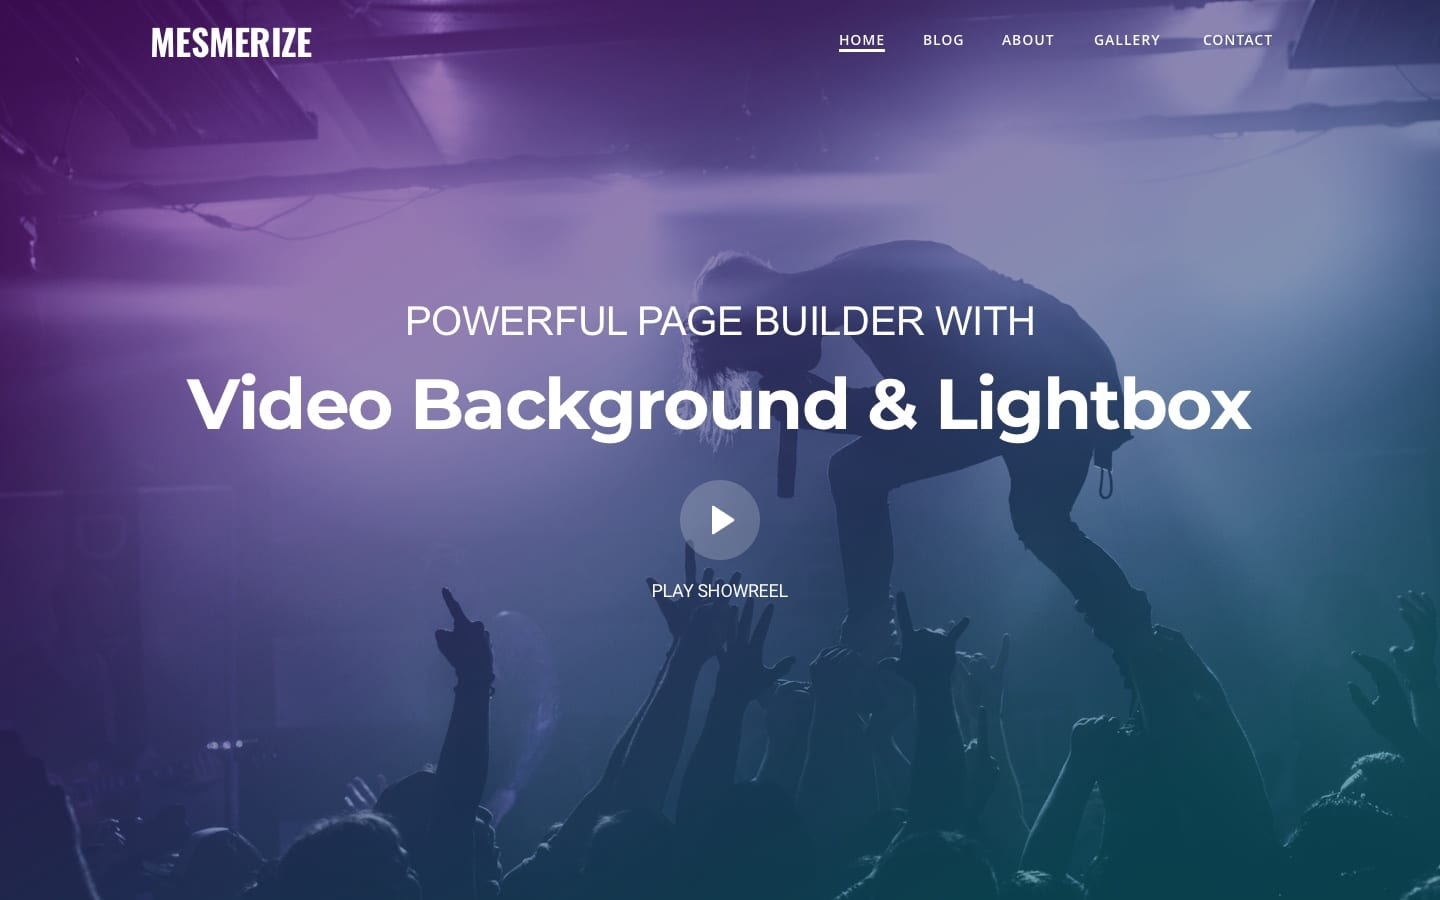 44+ Best Video Background WordPress Themes 2018 - Theme Junkie